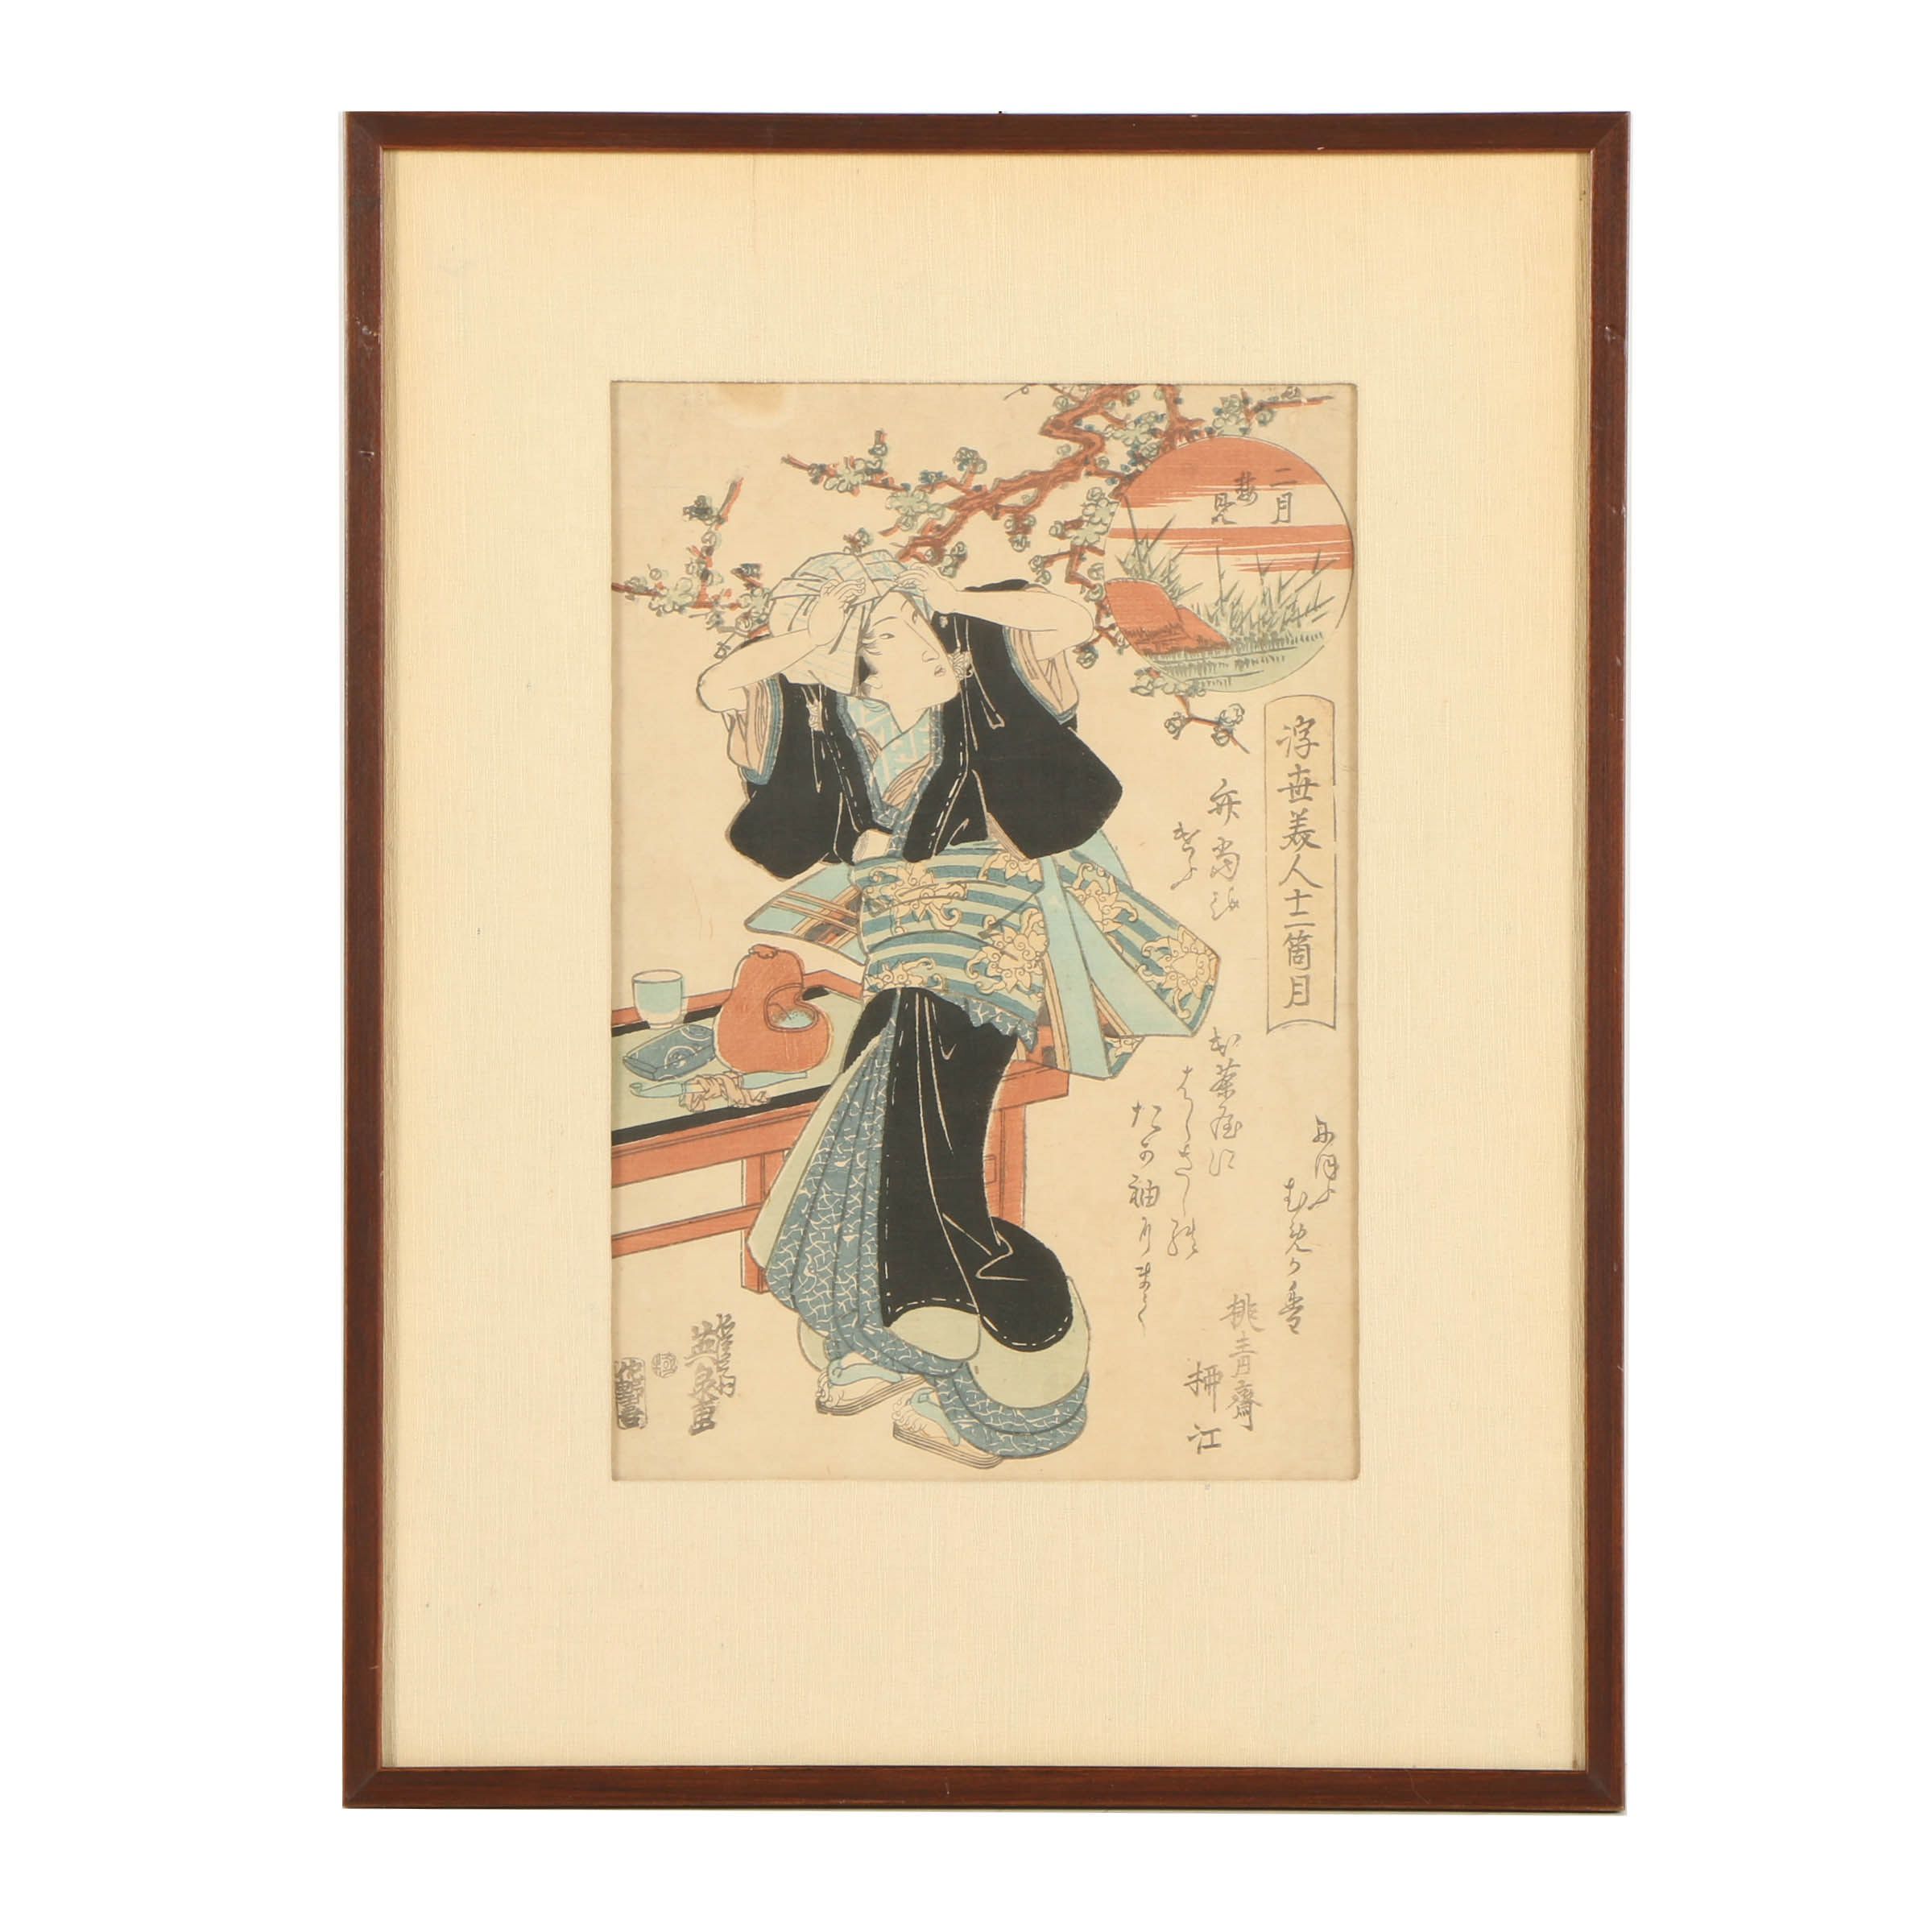 """Keisai Eisen Woodblock Print """"Plum Viewing in the Second Month"""""""